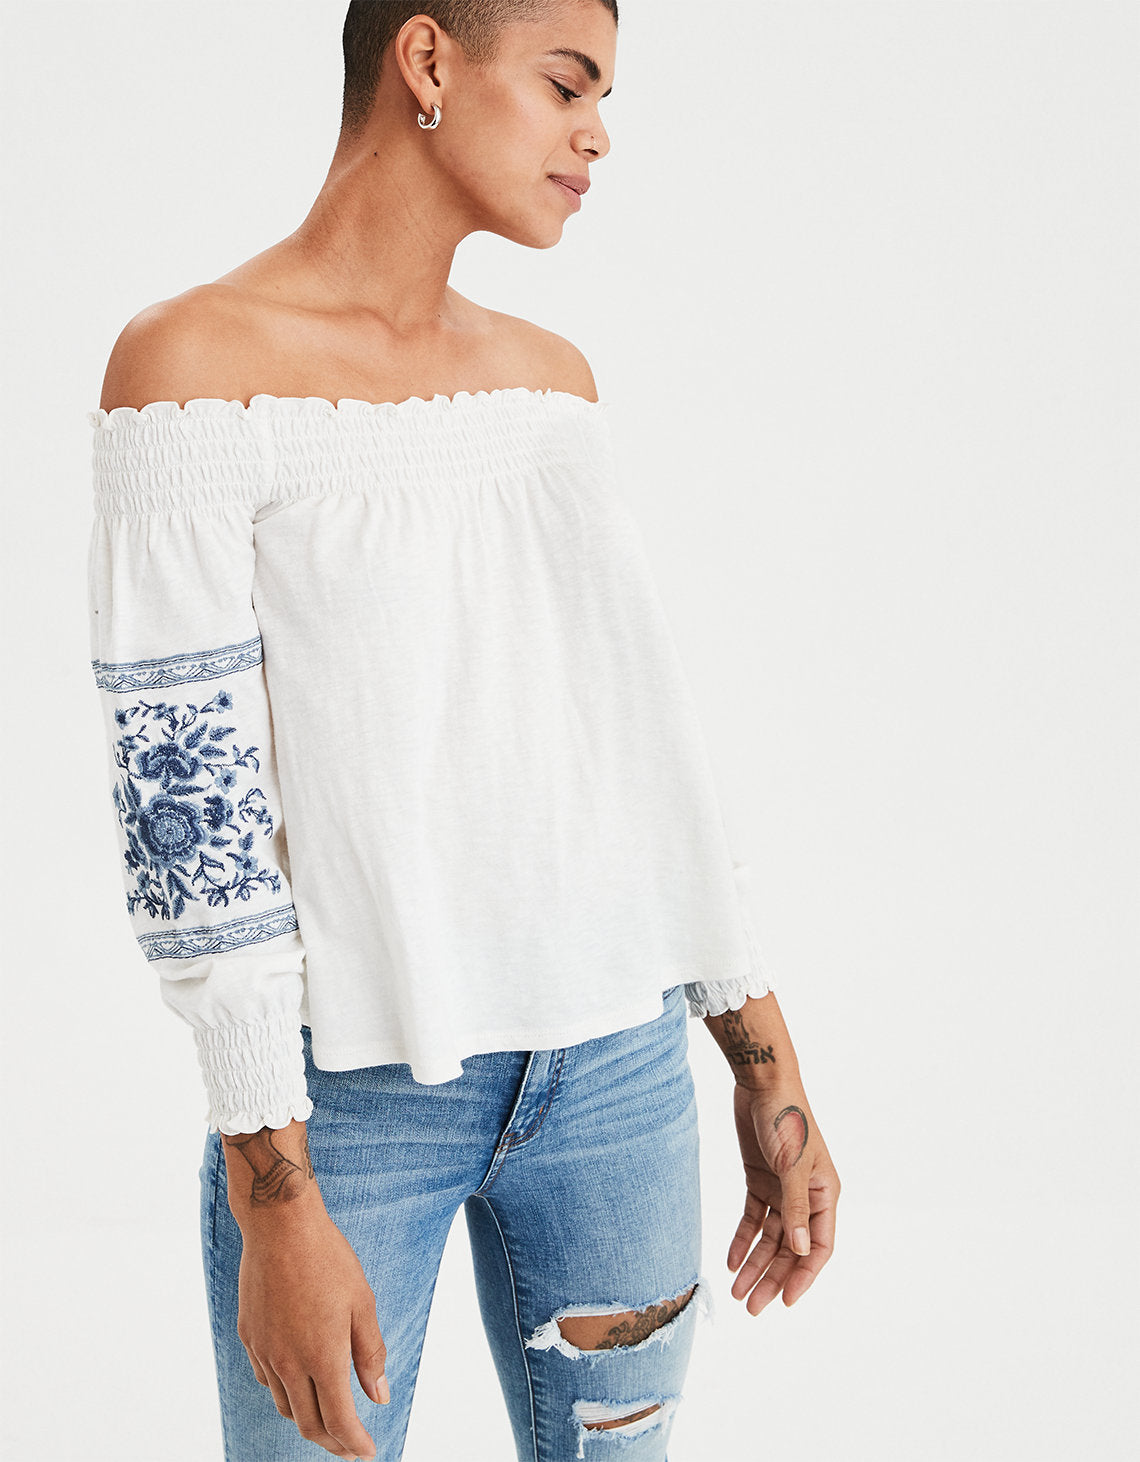 5d752ab76aa American Eagle | AE Smocked Off-the-Shoulder Top in Cream | American ...